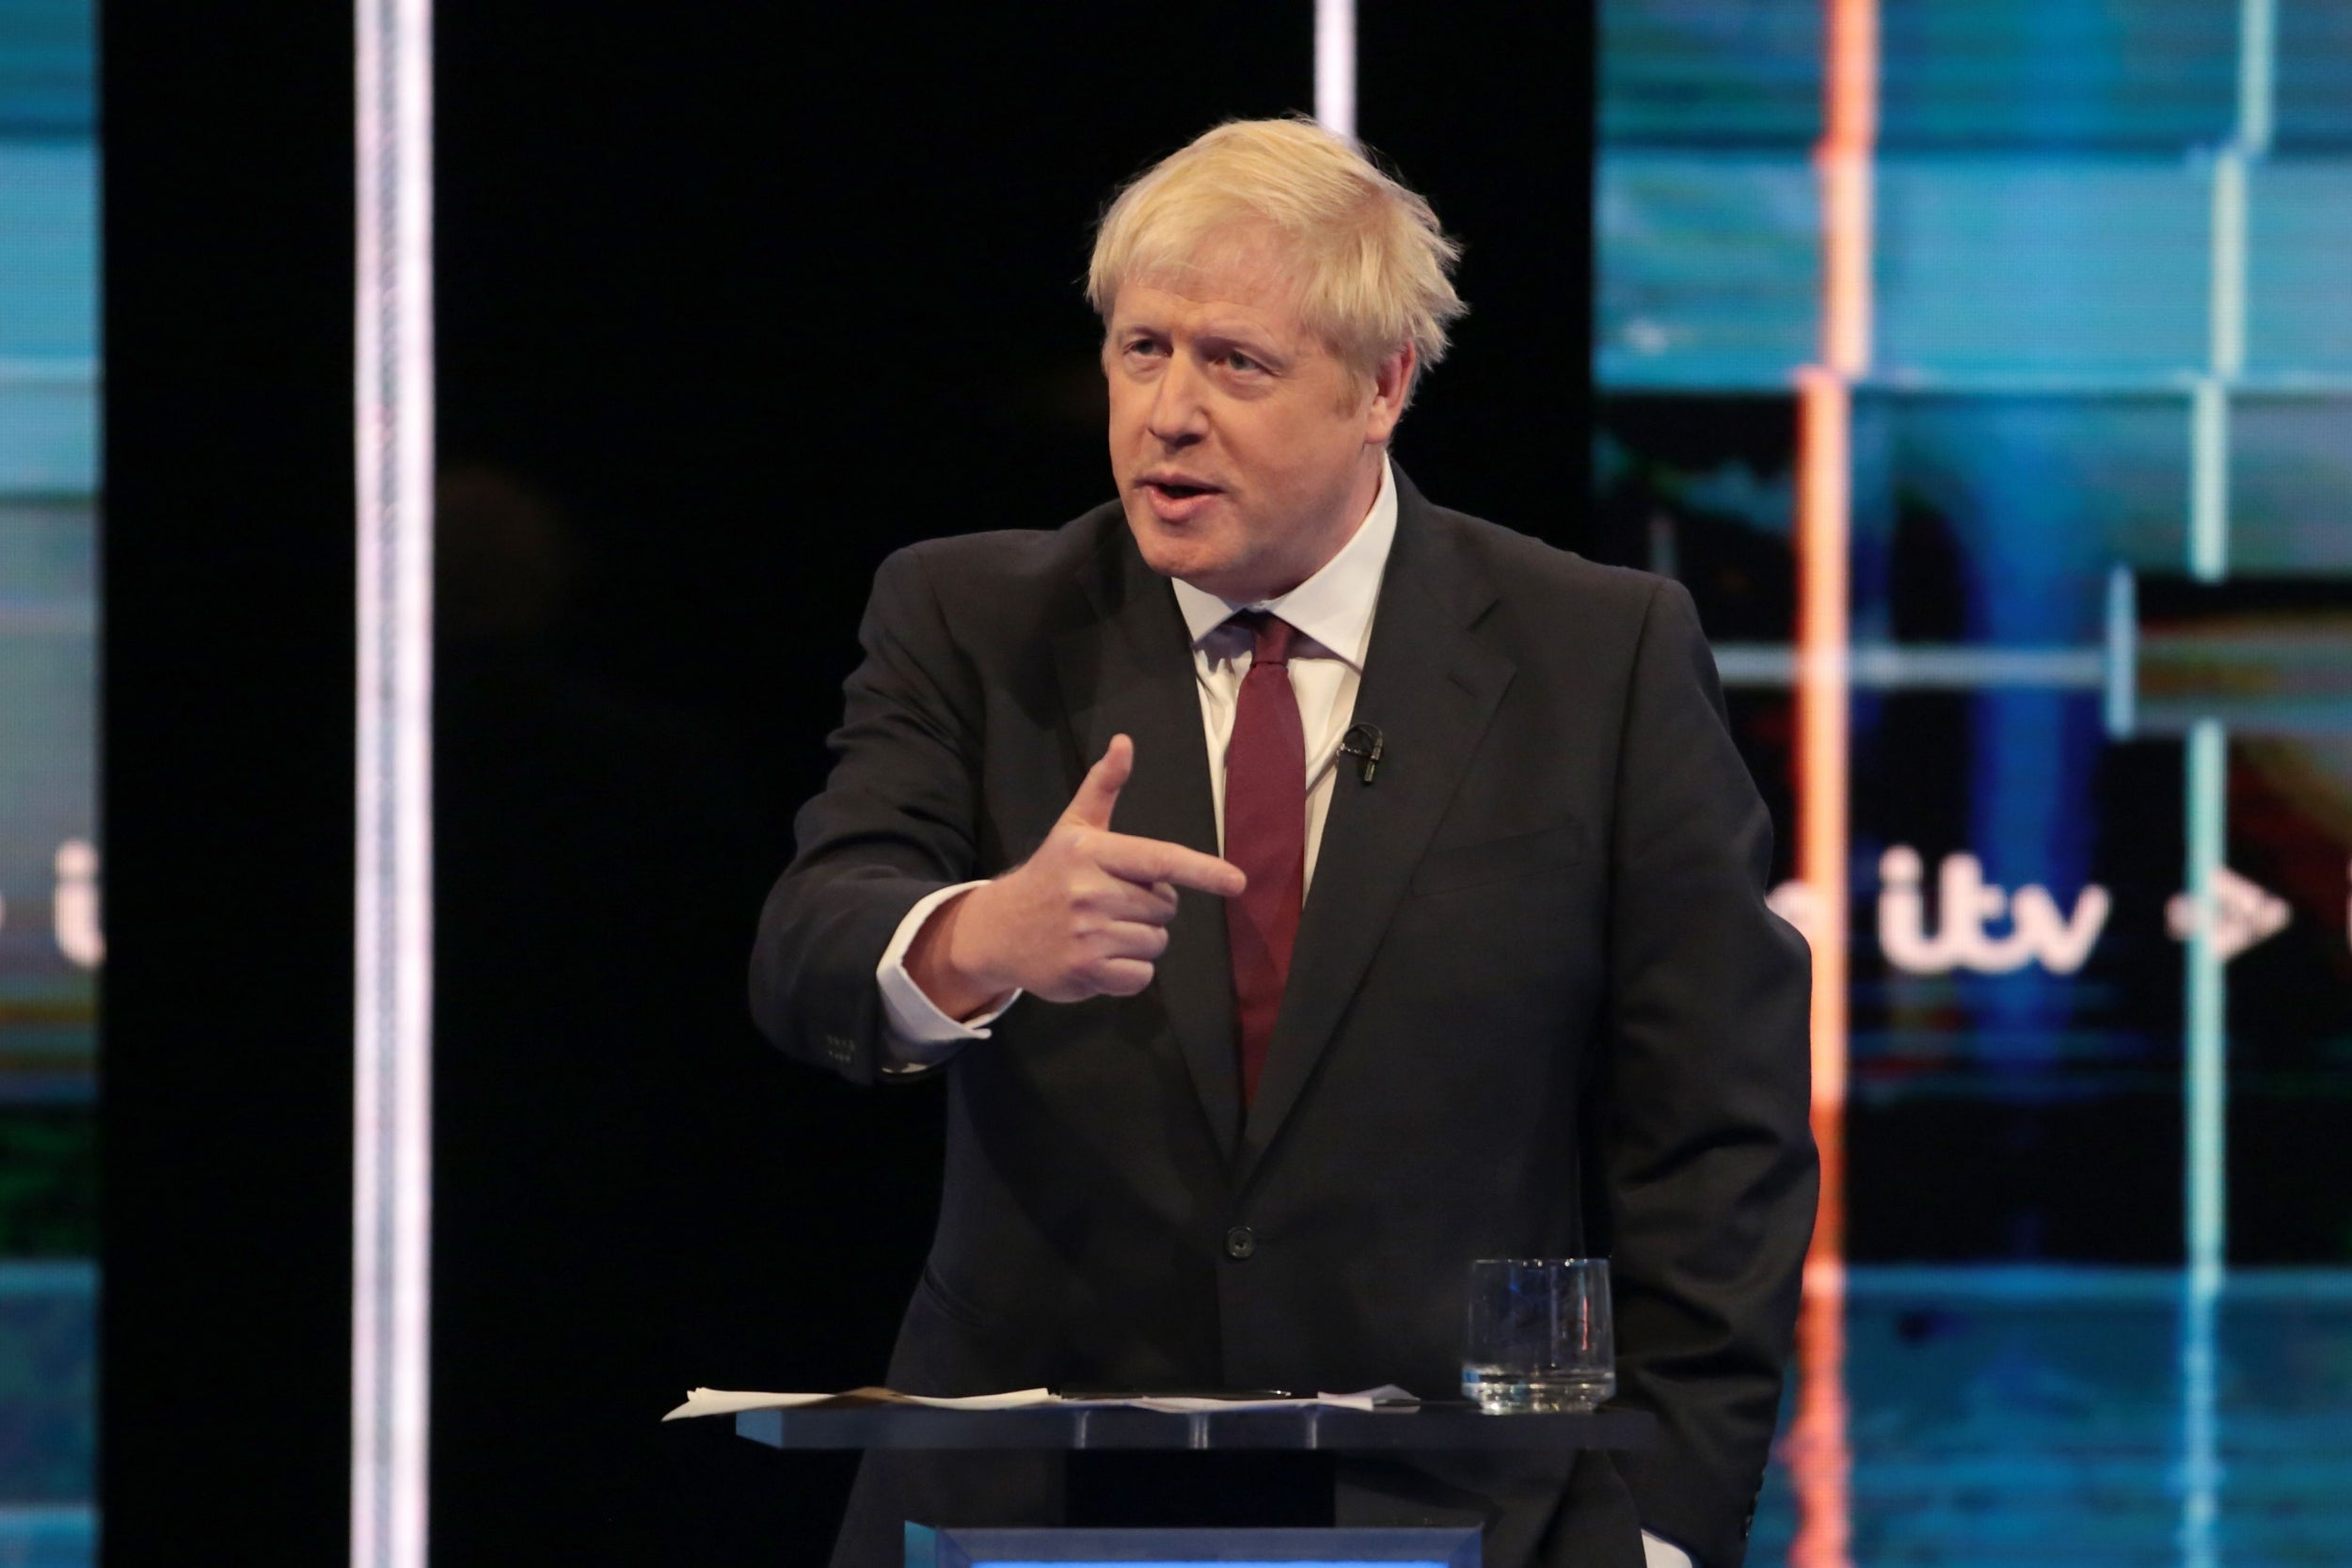 Boris Johnson's vow for a 'no-deal Brexit' is a complete fallacy – we would need deals galore just to keep afloat